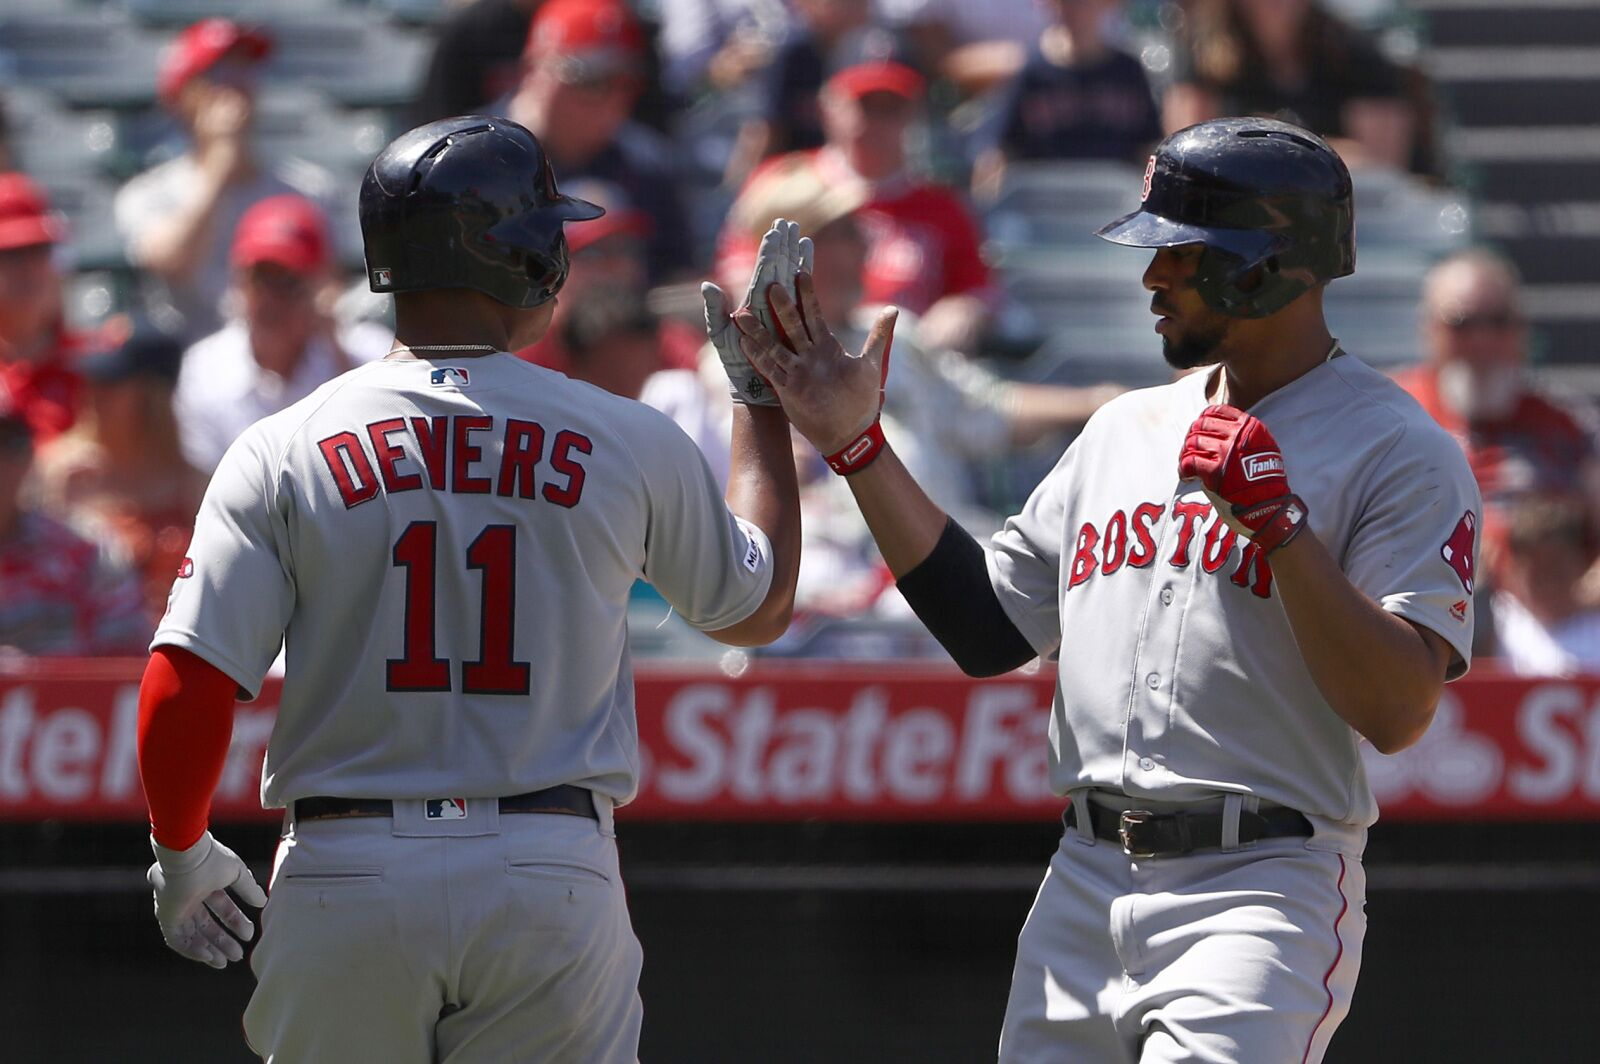 Boston Red Sox Updated Wild Card Odds To Claim Playoff Spot